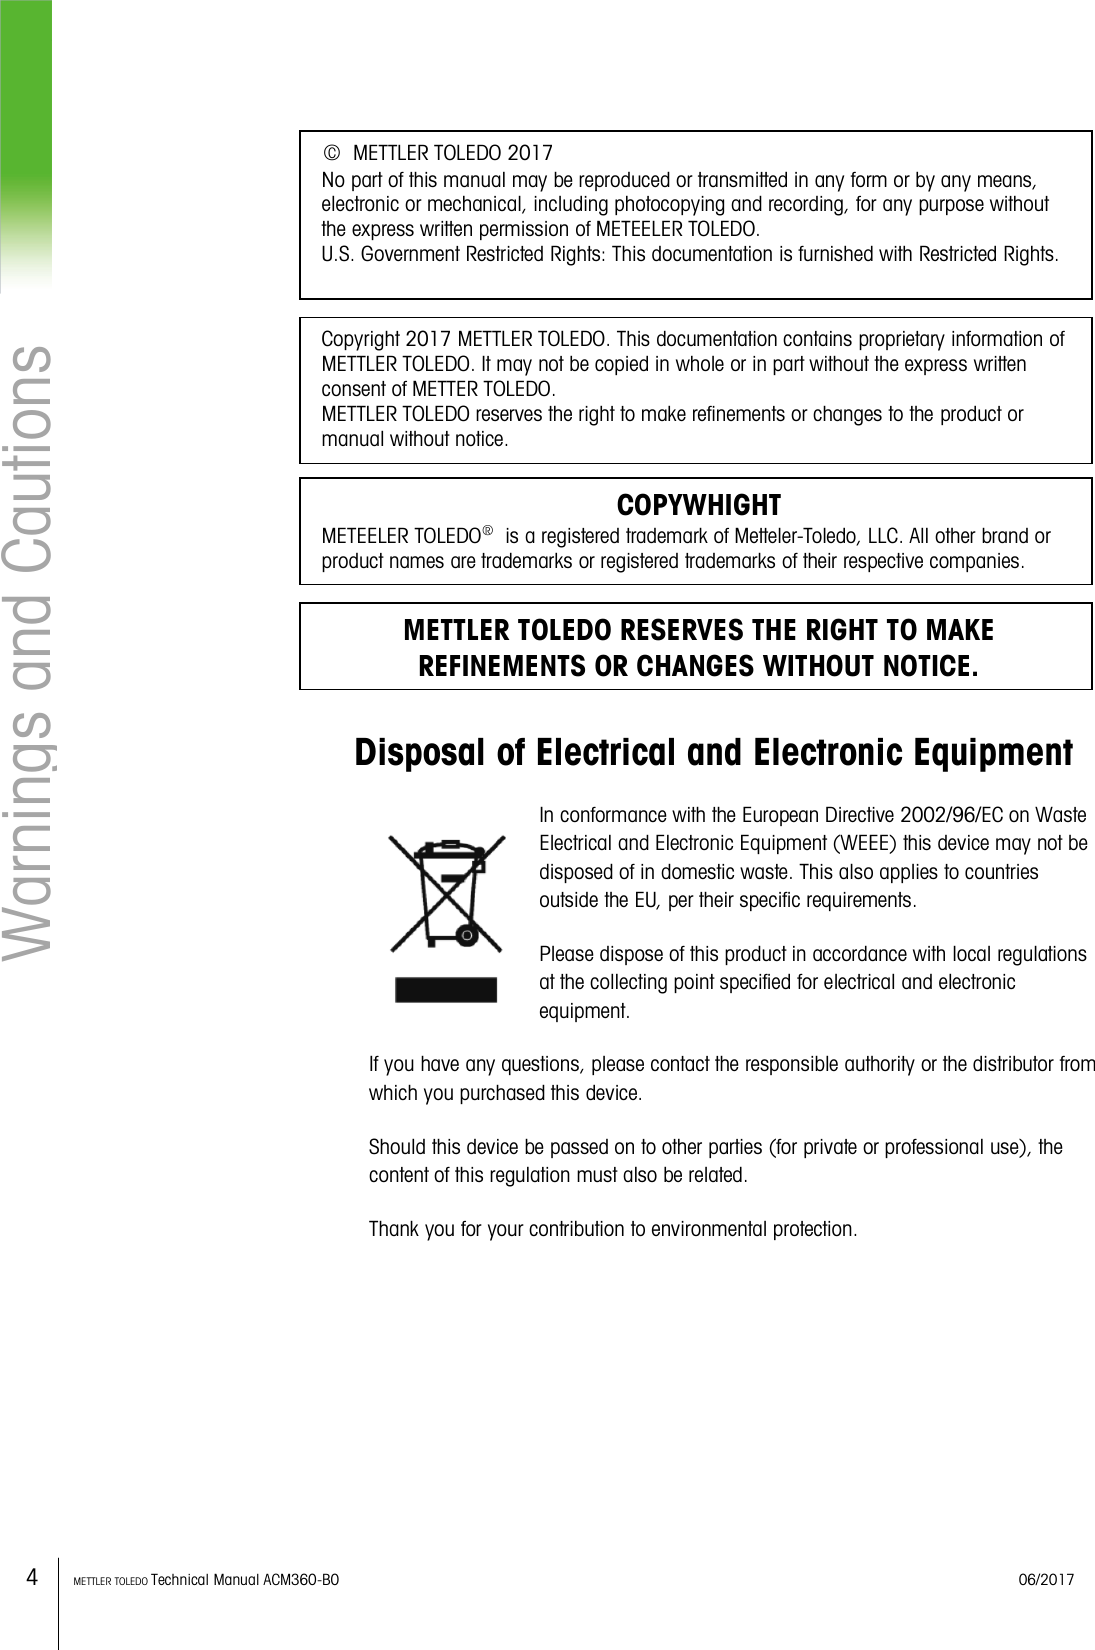 4    METTLER TOLEDO Technical Manual ACM360-B0    06/2017 Warnings and Cautions                      Disposal of Electrical and Electronic Equipment In conformance with the European Directive 2002/96/EC on Waste Electrical and Electronic Equipment (WEEE) this device may not be disposed of in domestic waste. This also applies to countries outside the EU, per their specific requirements. Please dispose of this product in accordance with local regulations at the collecting point specified for electrical and electronic equipment. If you have any questions, please contact the responsible authority or the distributor from which you purchased this device. Should this device be passed on to other parties (for private or professional use), the content of this regulation must also be related. Thank you for your contribution to environmental protection.    ○C  METTLER TOLEDO 2017 No part of this manual may be reproduced or transmitted in any form or by any means, electronic or mechanical, including photocopying and recording, for any purpose without the express written permission of METEELER TOLEDO. U.S. Government Restricted Rights: This documentation is furnished with Restricted Rights. Copyright 2017 METTLER TOLEDO. This documentation contains proprietary information of METTLER TOLEDO. It may not be copied in whole or in part without the express written consent of METTER TOLEDO. METTLER TOLEDO reserves the right to make refinements or changes to the product or manual without notice. COPYWHIGHT METEELER TOLEDO○R  is a registered trademark of Metteler-Toledo, LLC. All other brand or product names are trademarks or registered trademarks of their respective companies. METTLER TOLEDO RESERVES THE RIGHT TO MAKE REFINEMENTS OR CHANGES WITHOUT NOTICE.